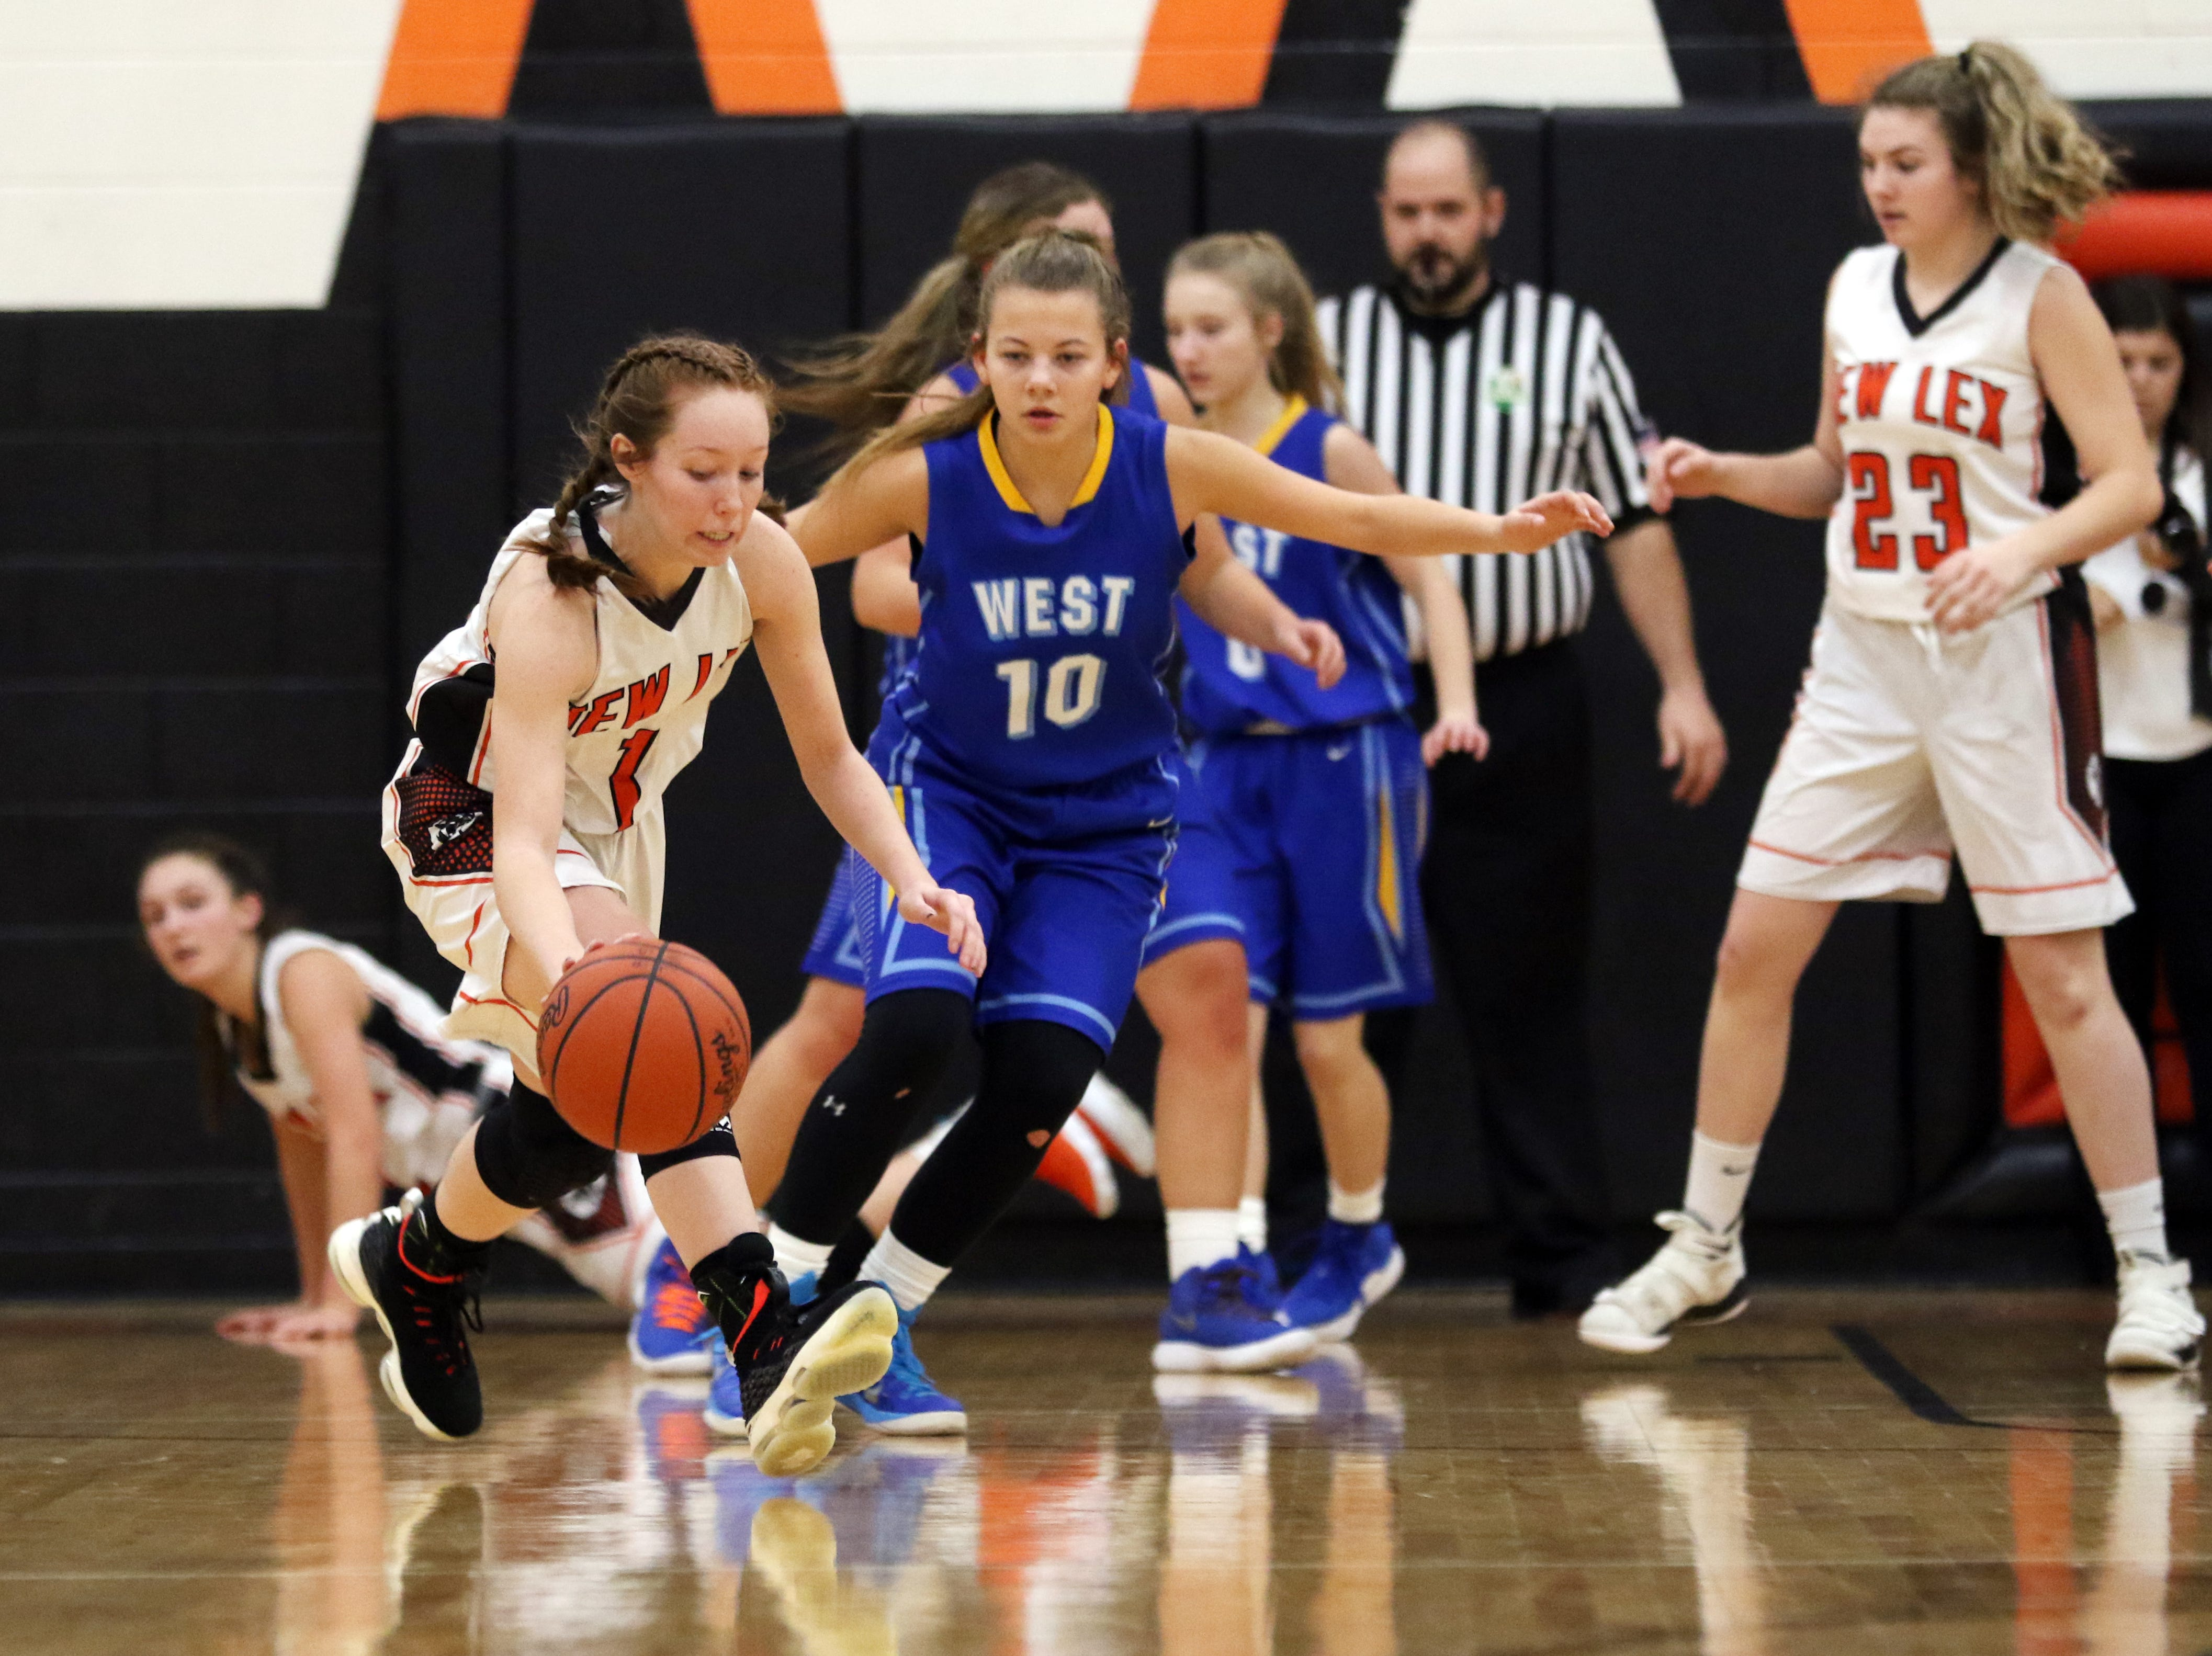 New Lexington's Kenadee Dillon moves with the ball against West Muskingum.